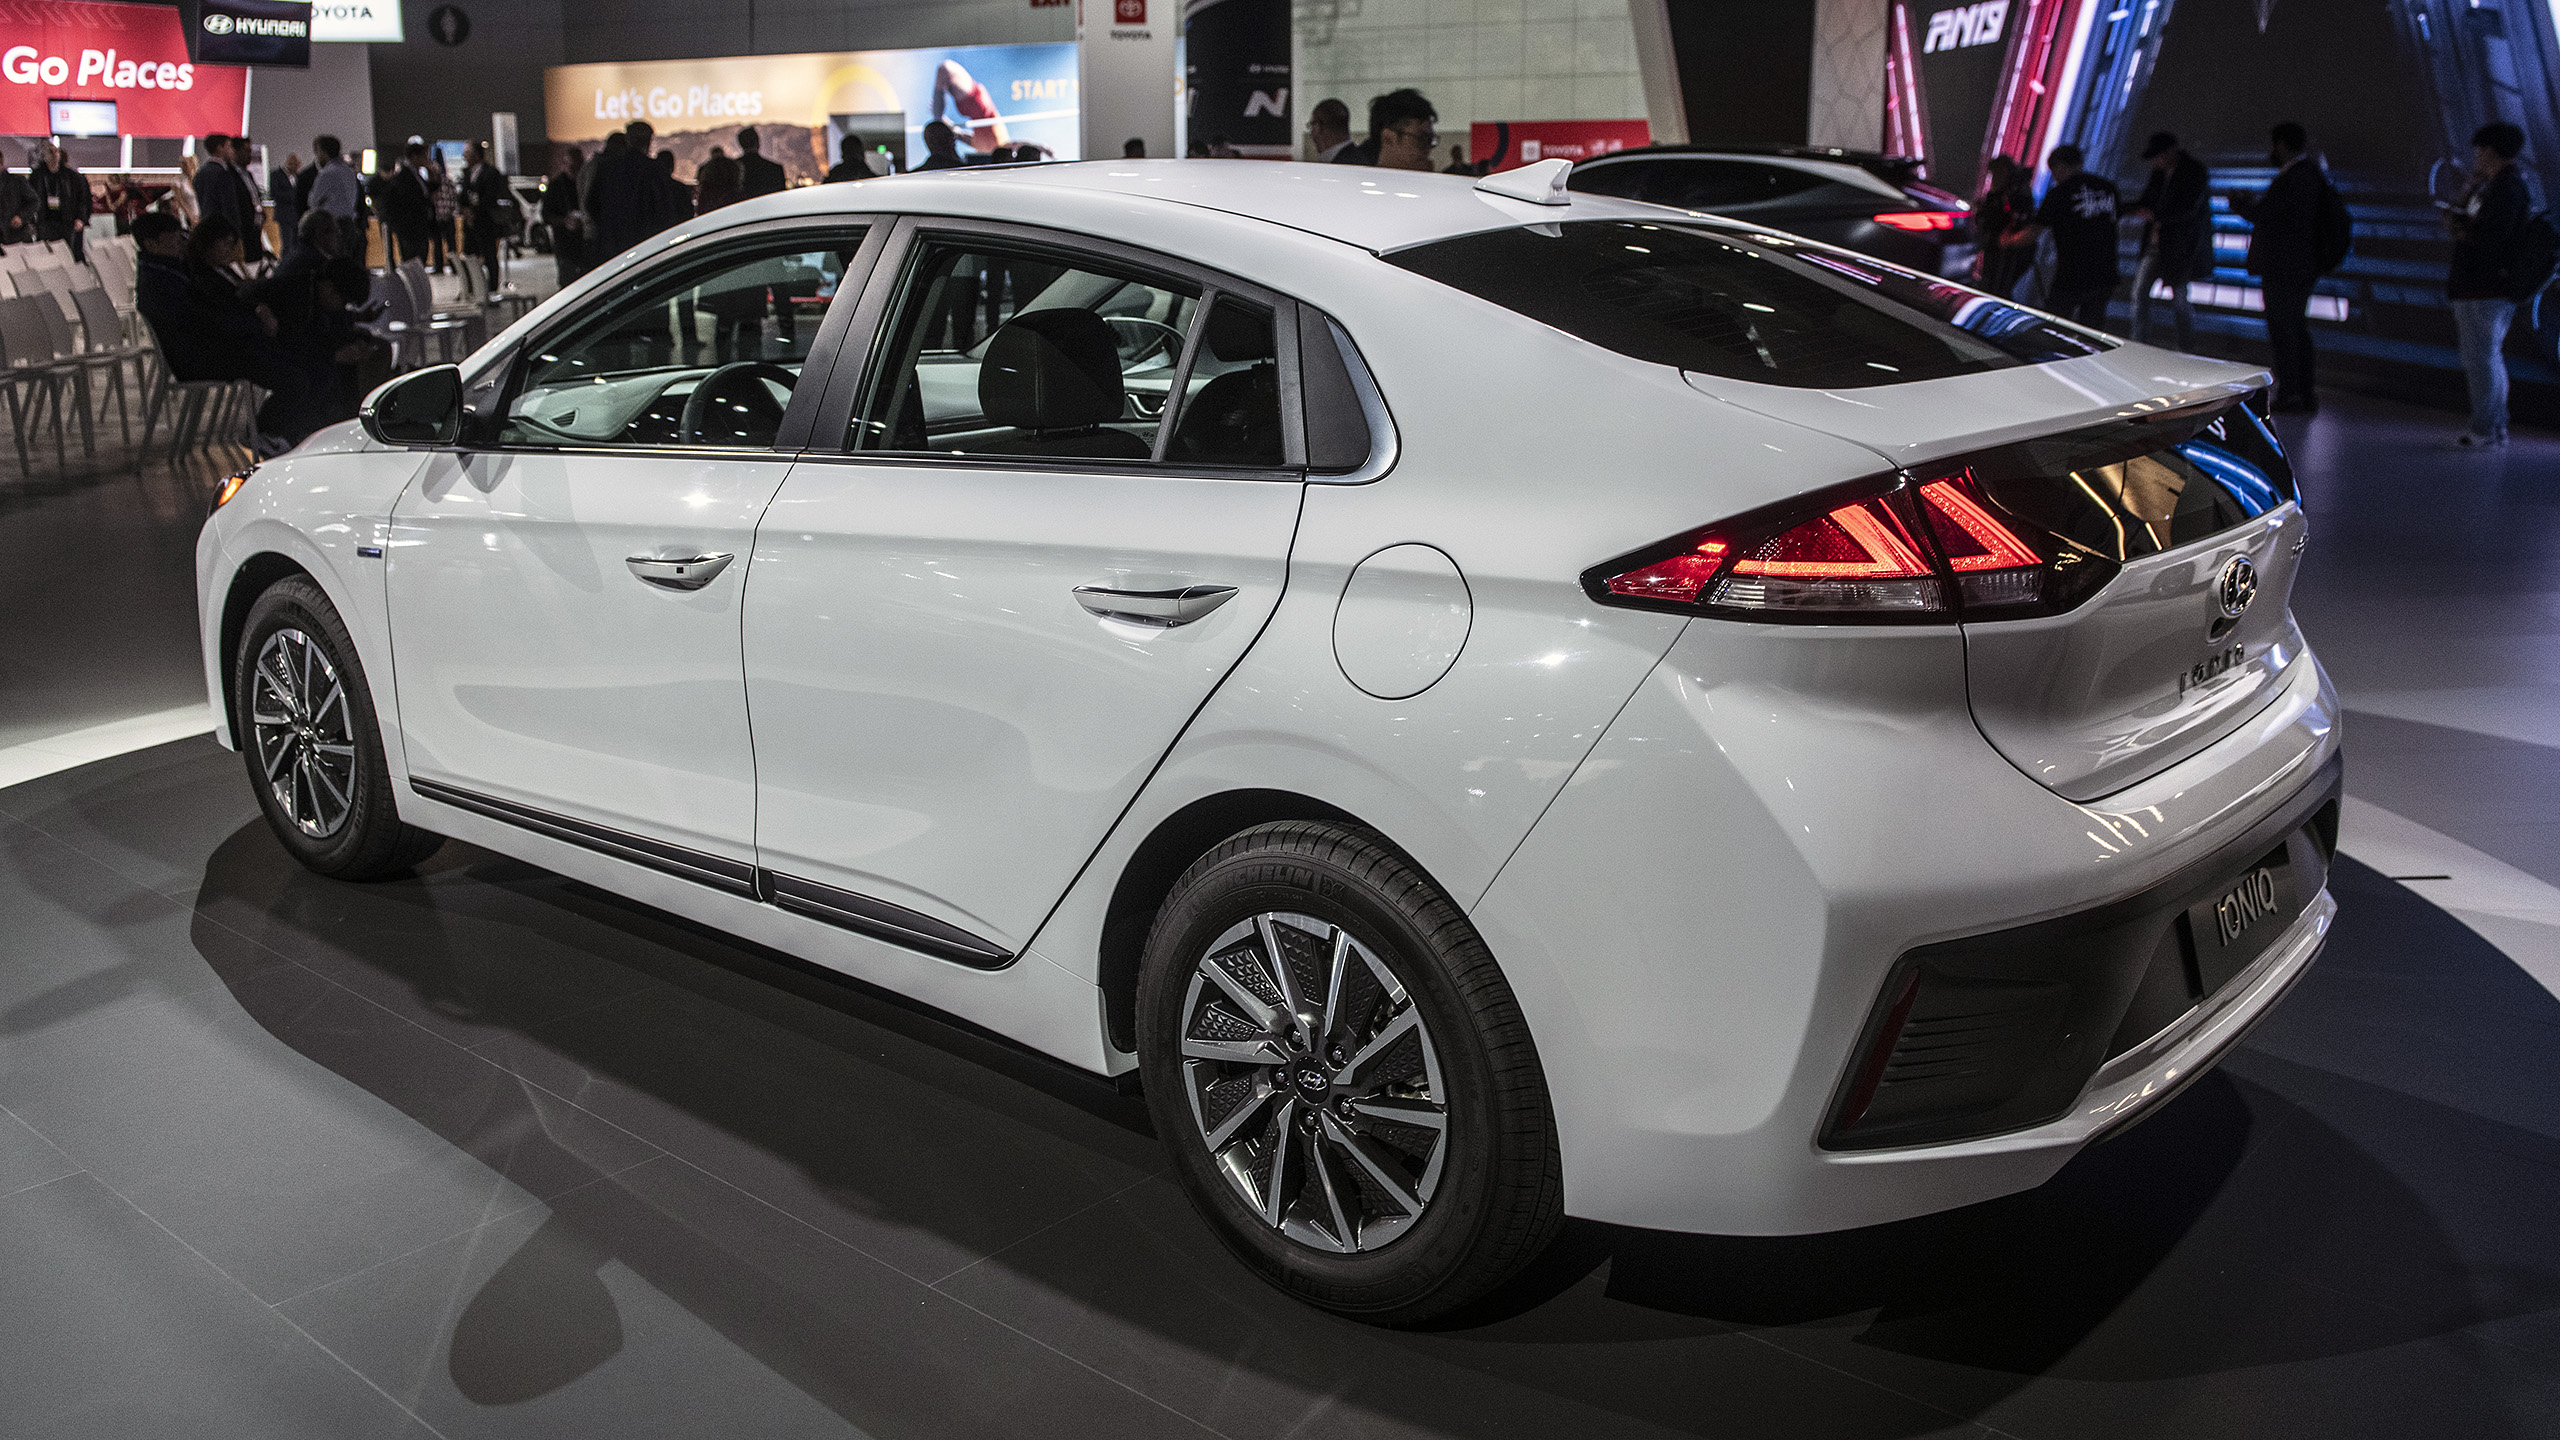 2020 hyundai ioniq debuts with new styling, more ev range